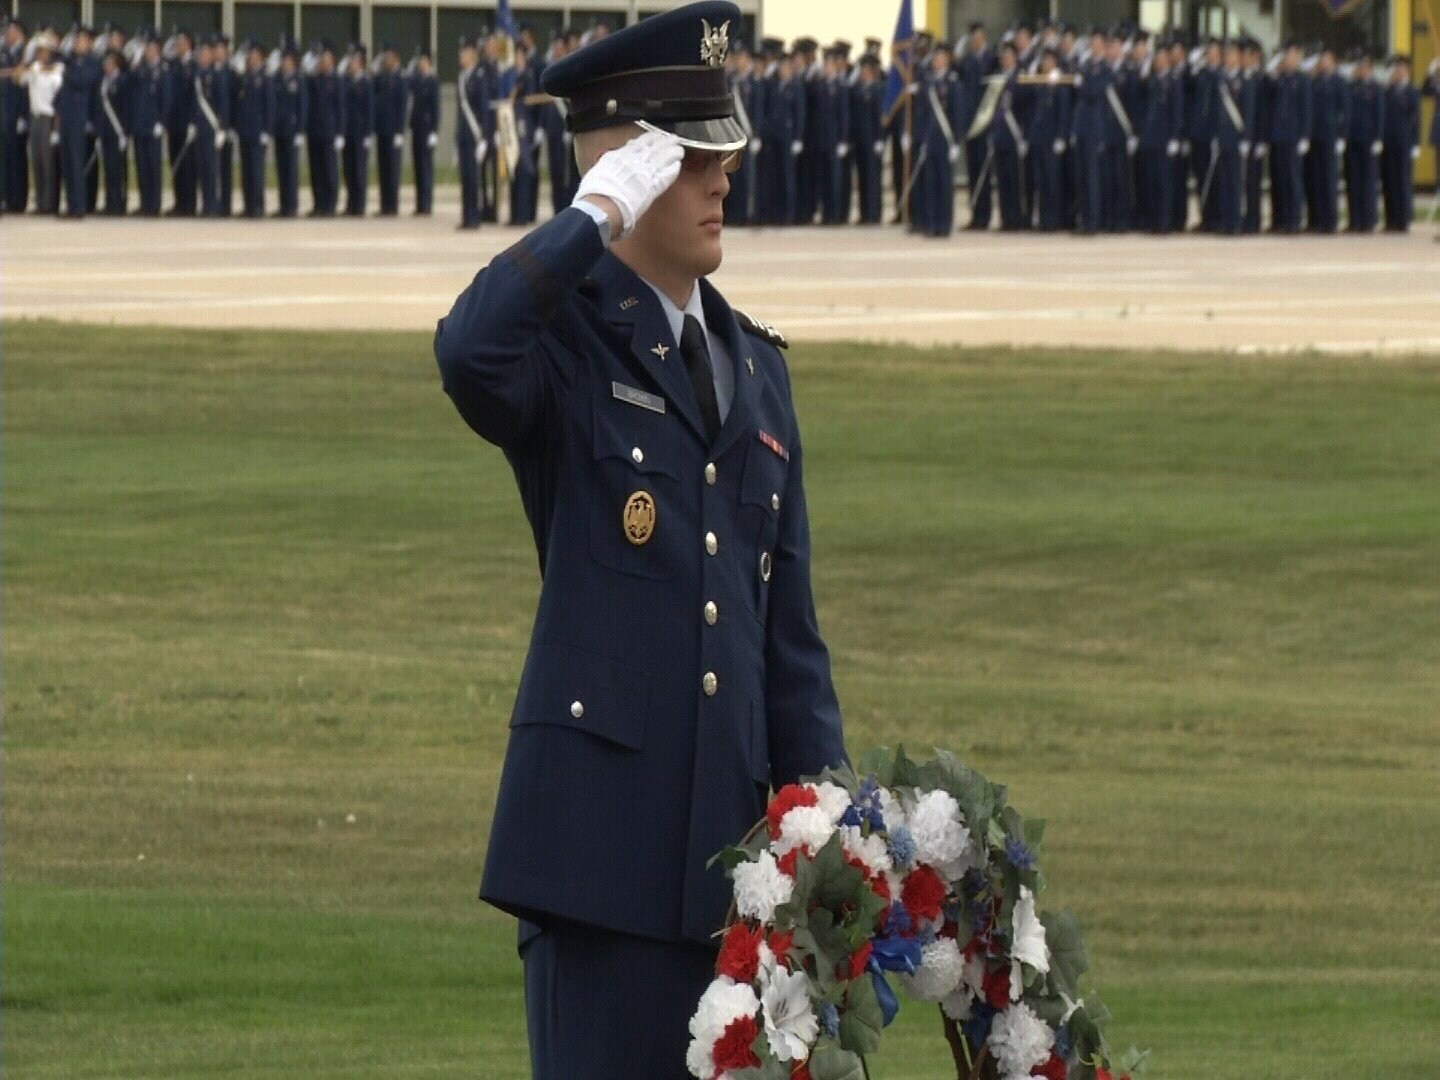 Air Force Academy cadets and graduates that have died in the past year were honored in a Memorial Ceremony on Friday afternoon. (KOAA)